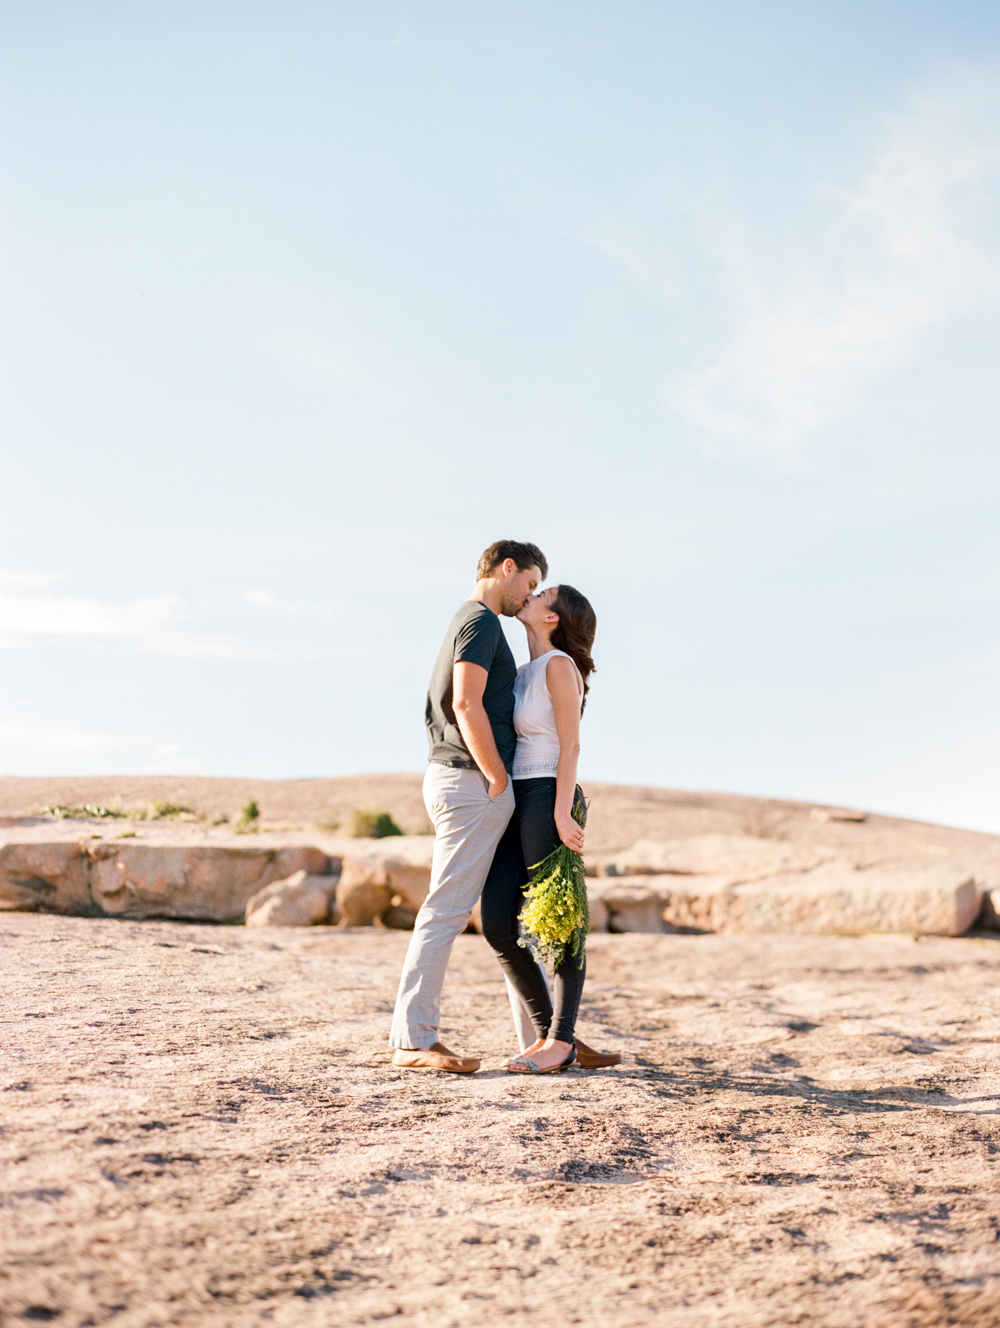 dana fernandez photography enchanted rock engagements photographer austin wedding destination film-9.jpg